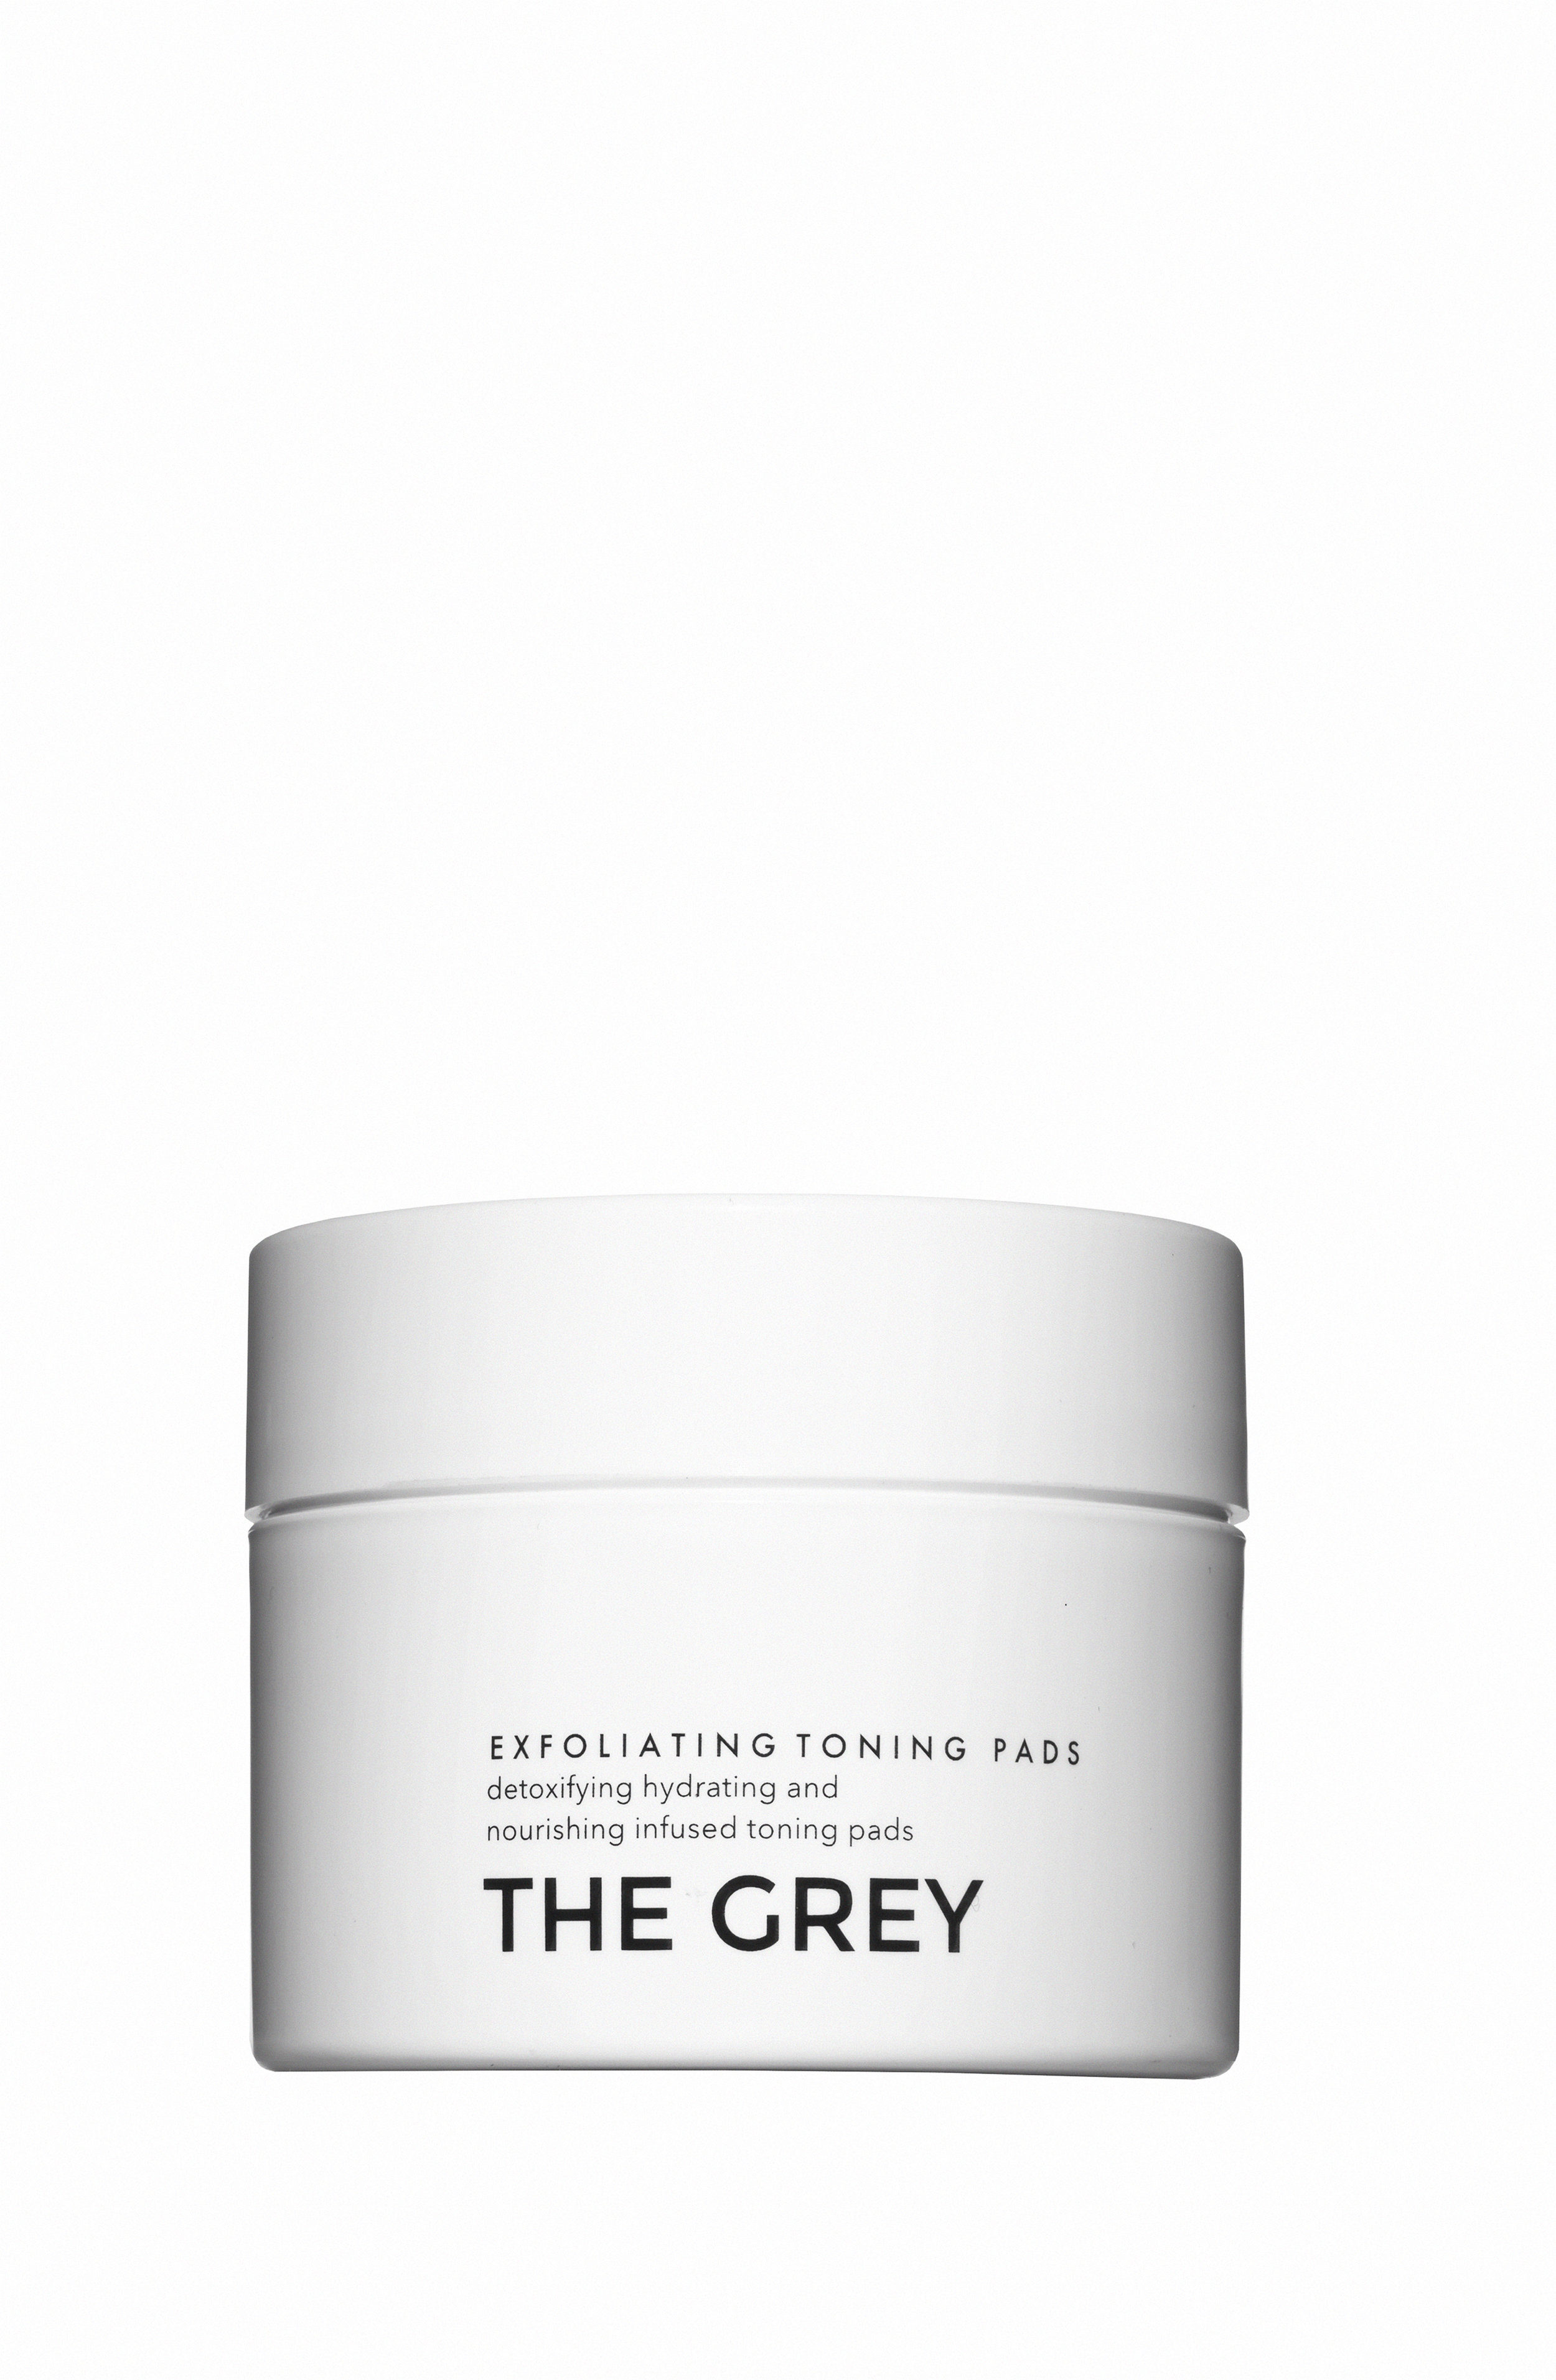 The Grey Men's Skincare _ Exfoliating Toning Pads _ 0 _.jpg